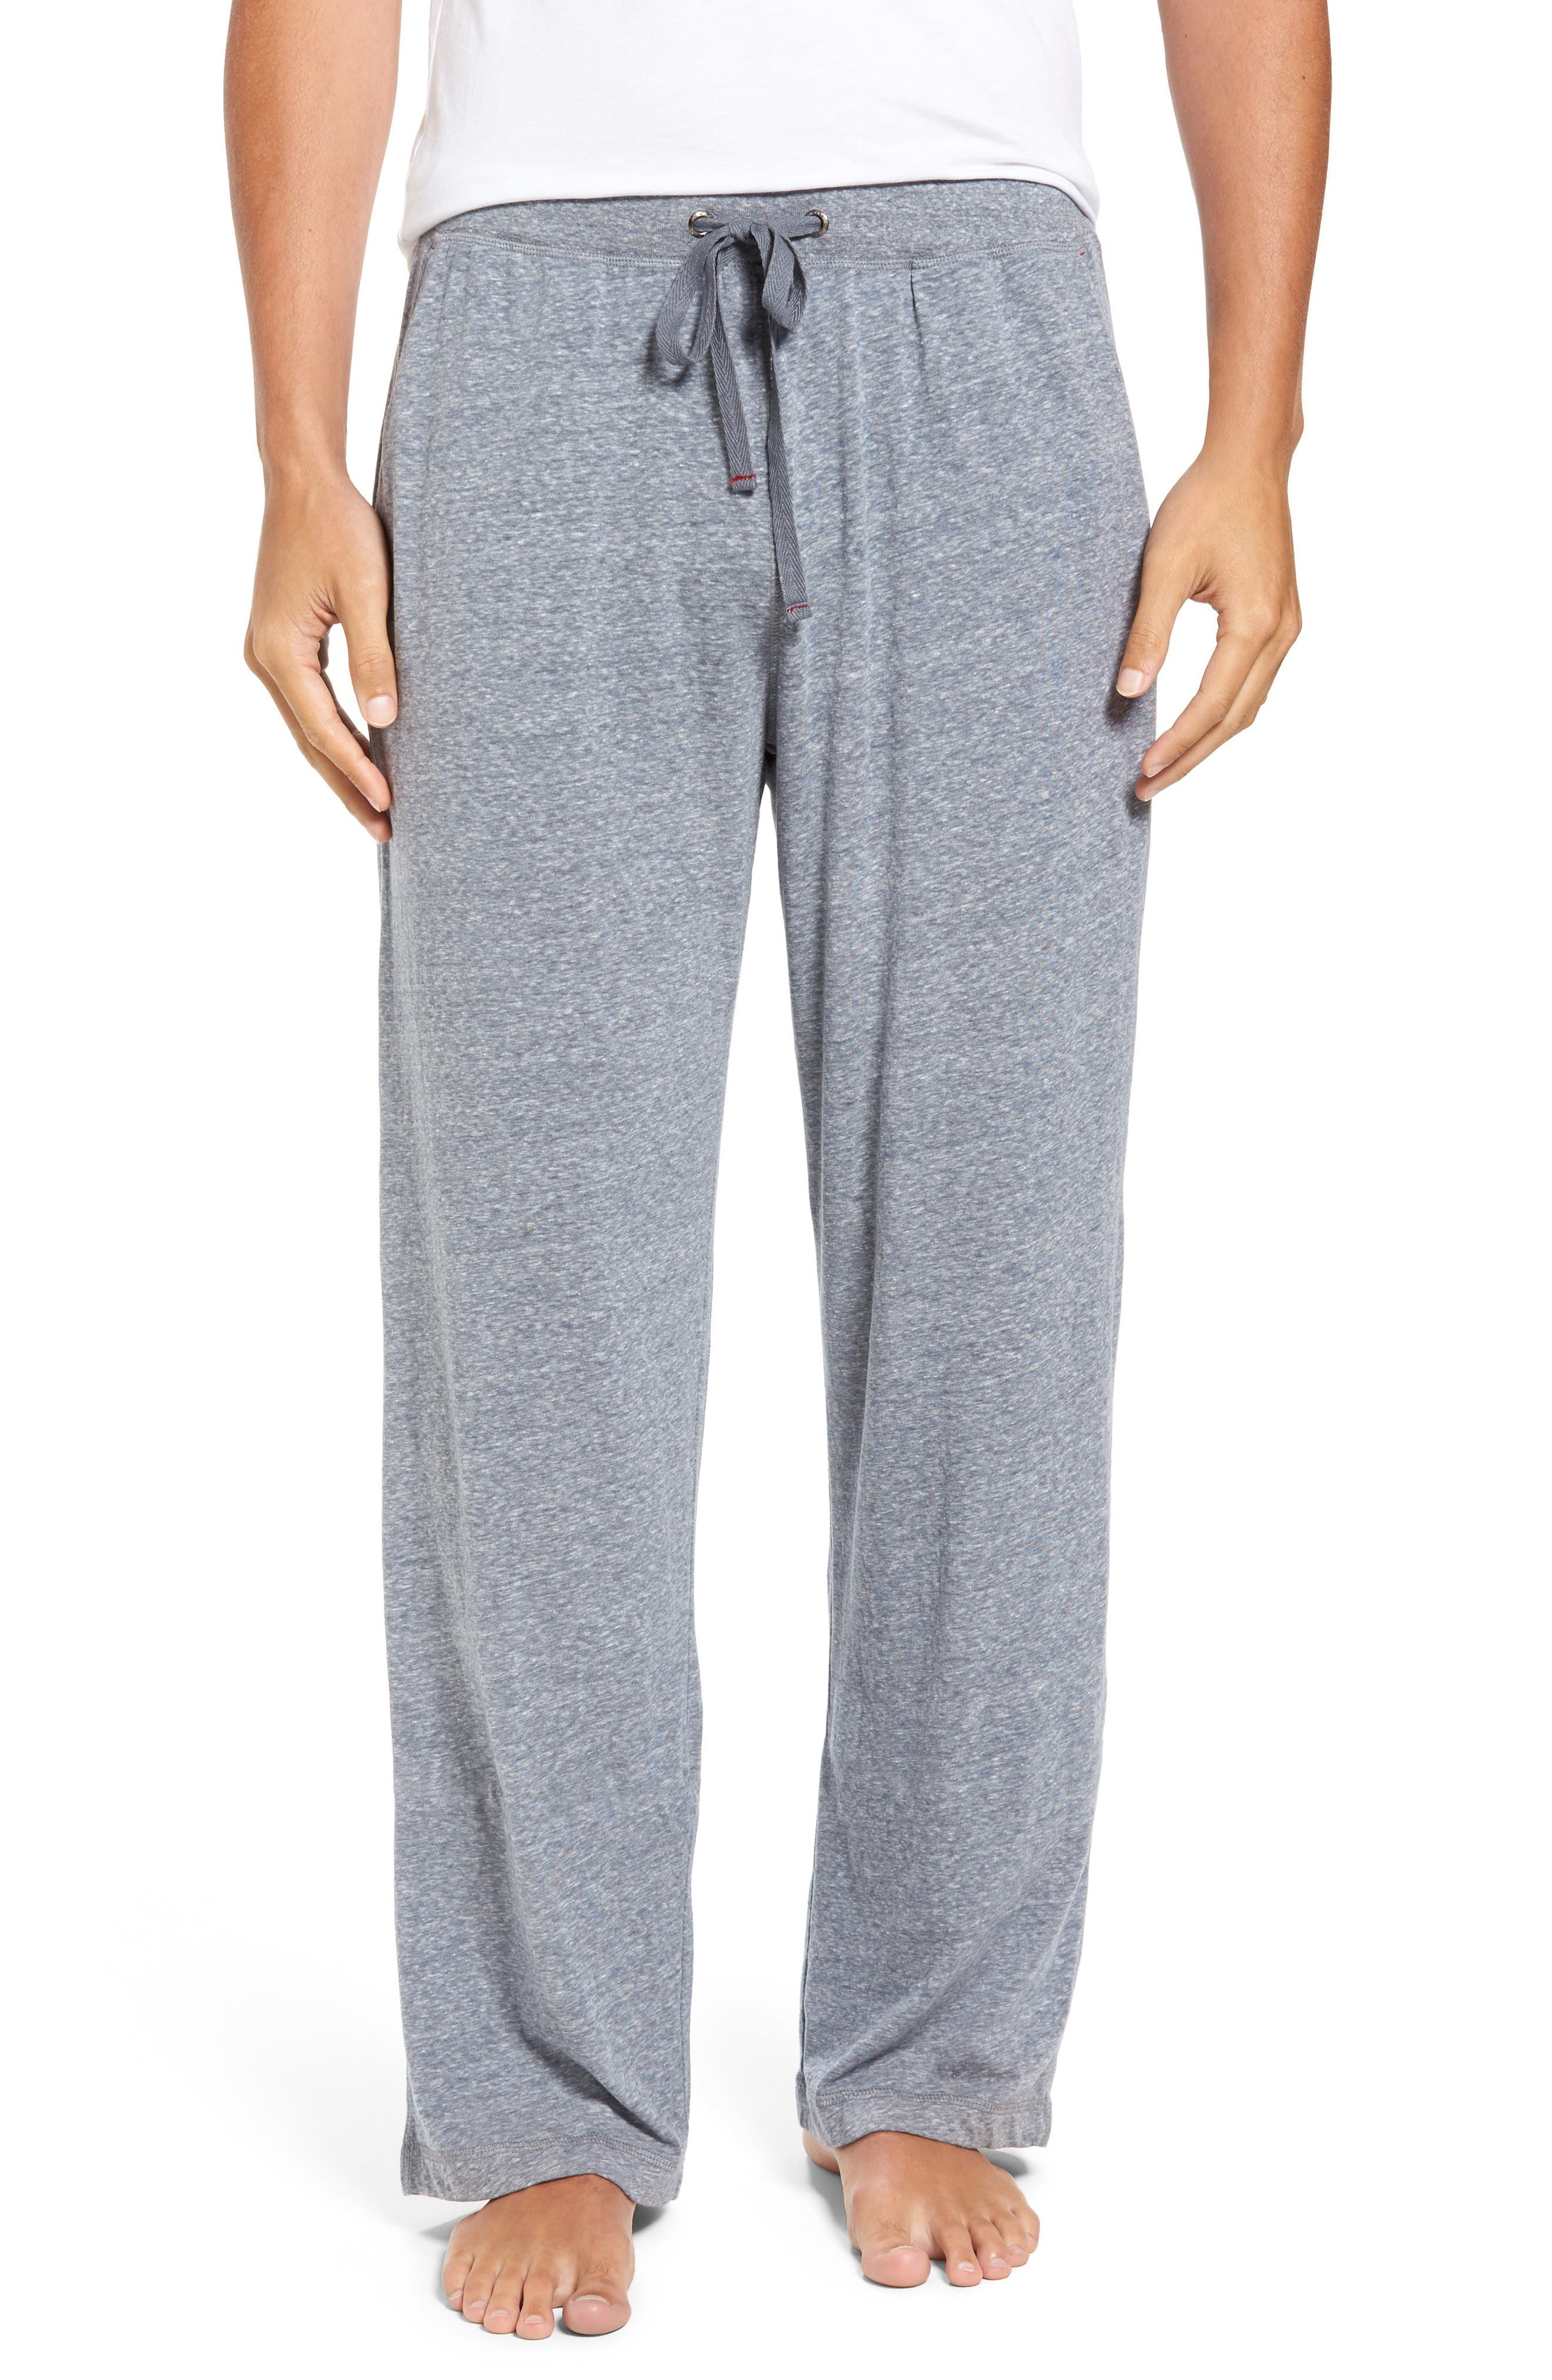 Alternate Image 1 Selected - Daniel Buchler Recycled Cotton Blend Lounge Pants